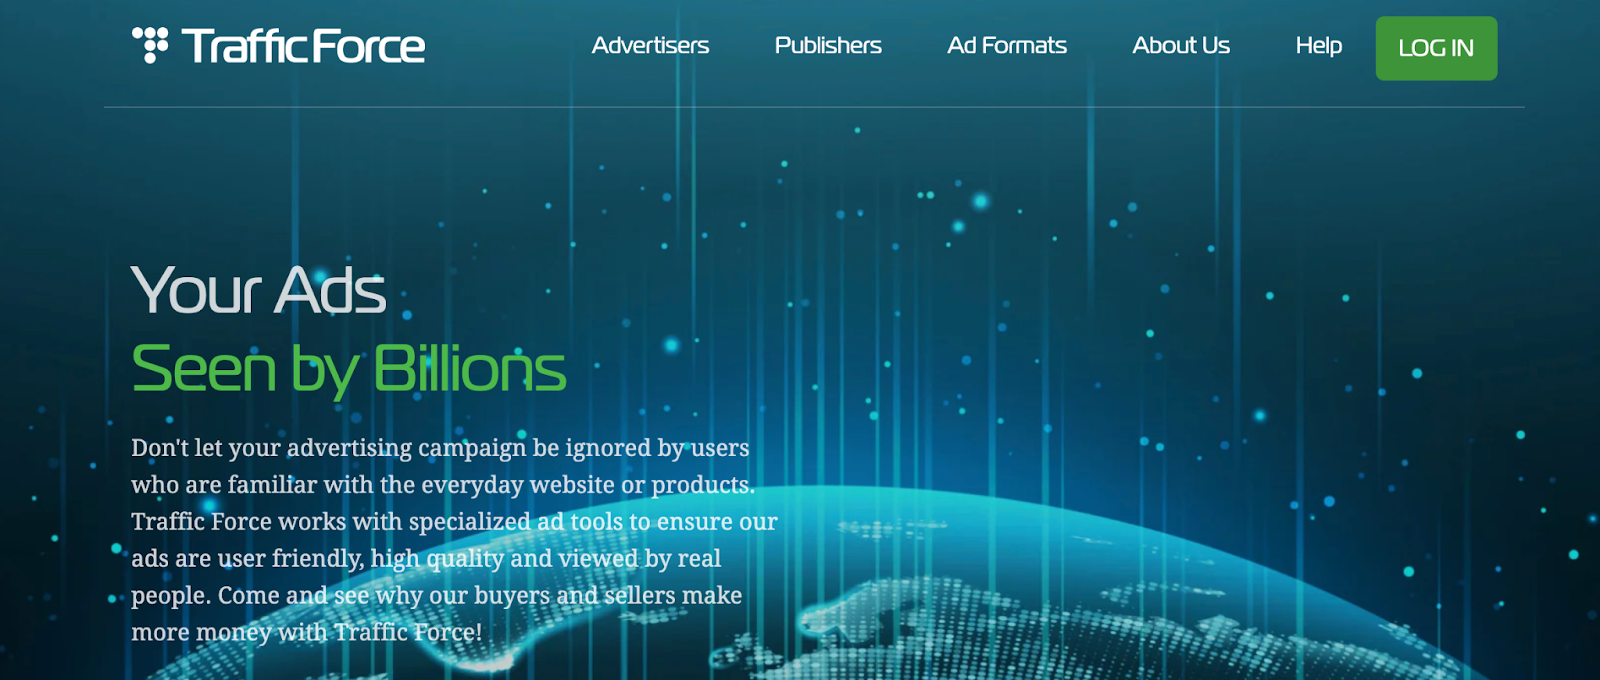 Traffic Force Ad Network Homepage